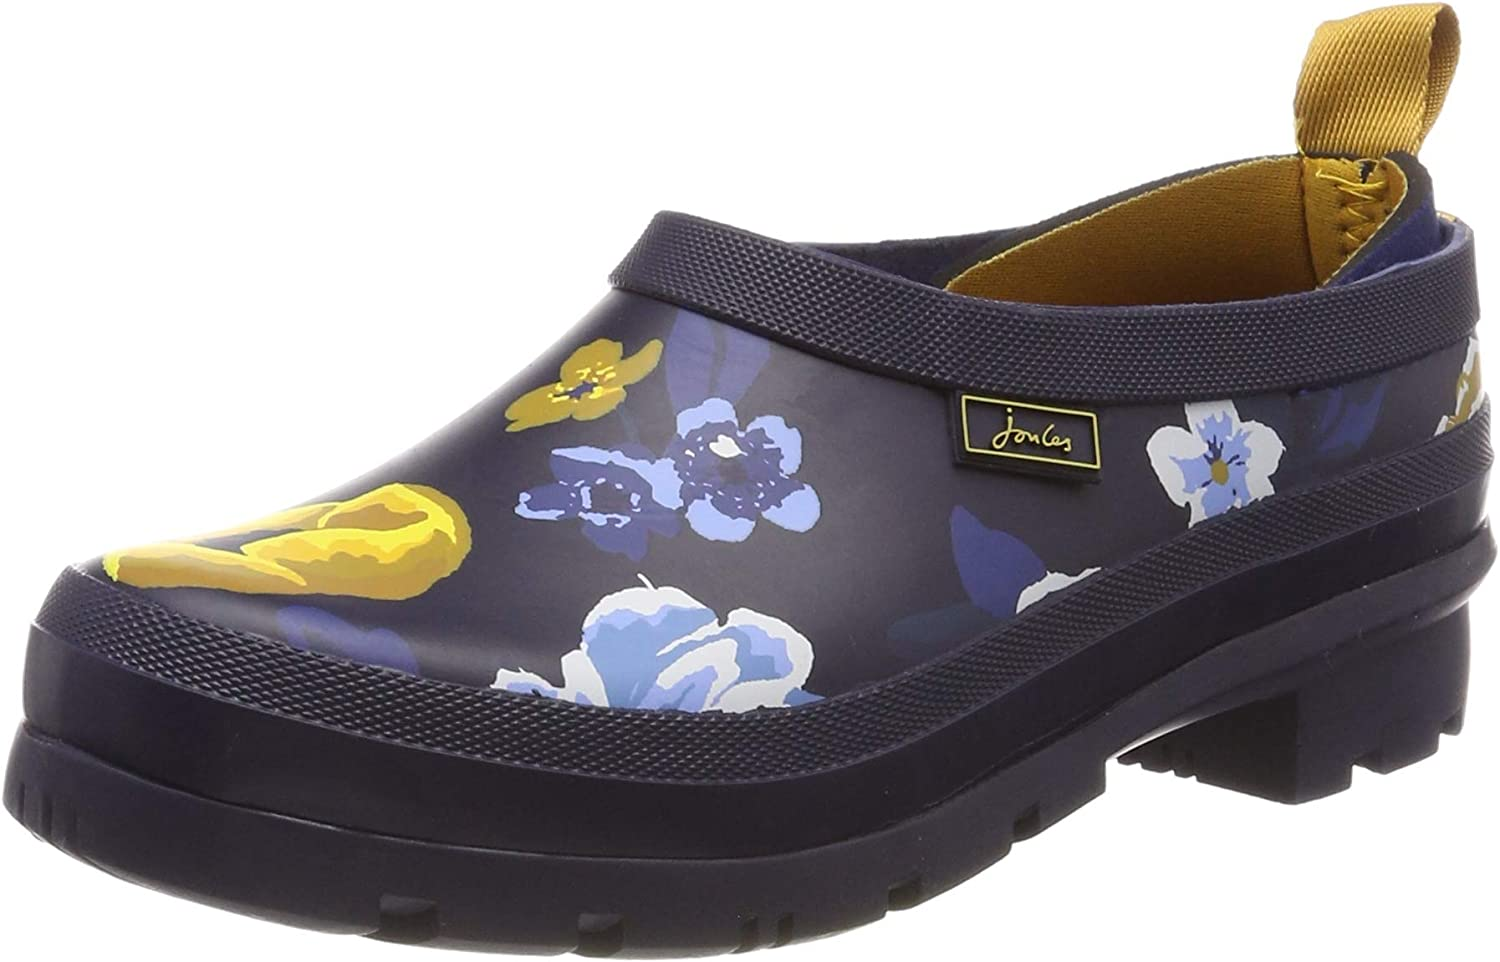 Joules Pop On Slip On shoes